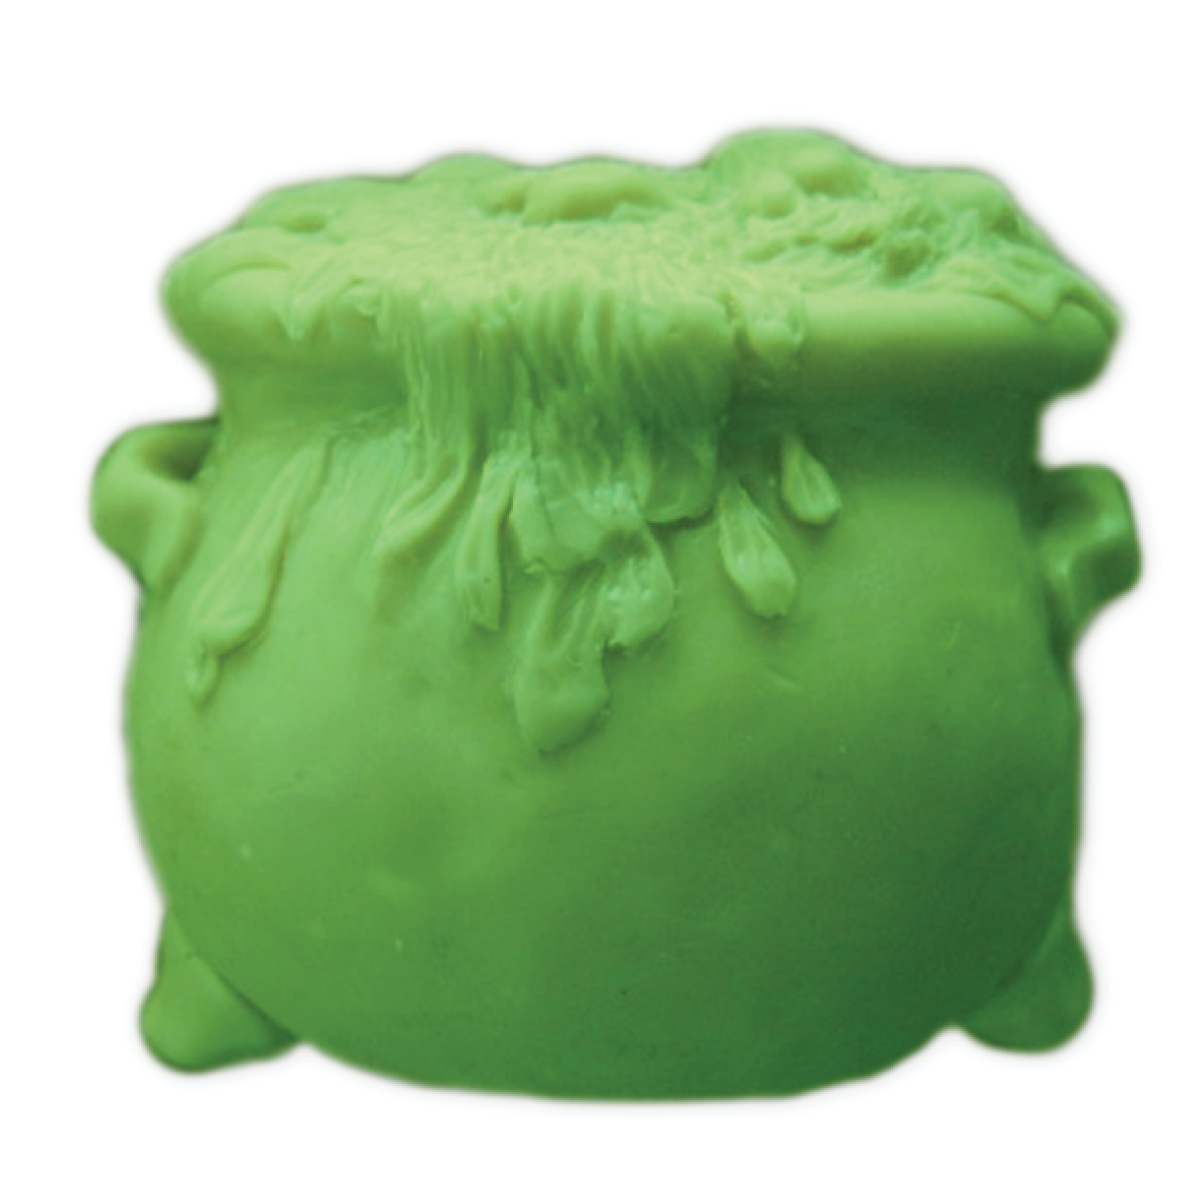 Milky Way Cauldron Soap mold